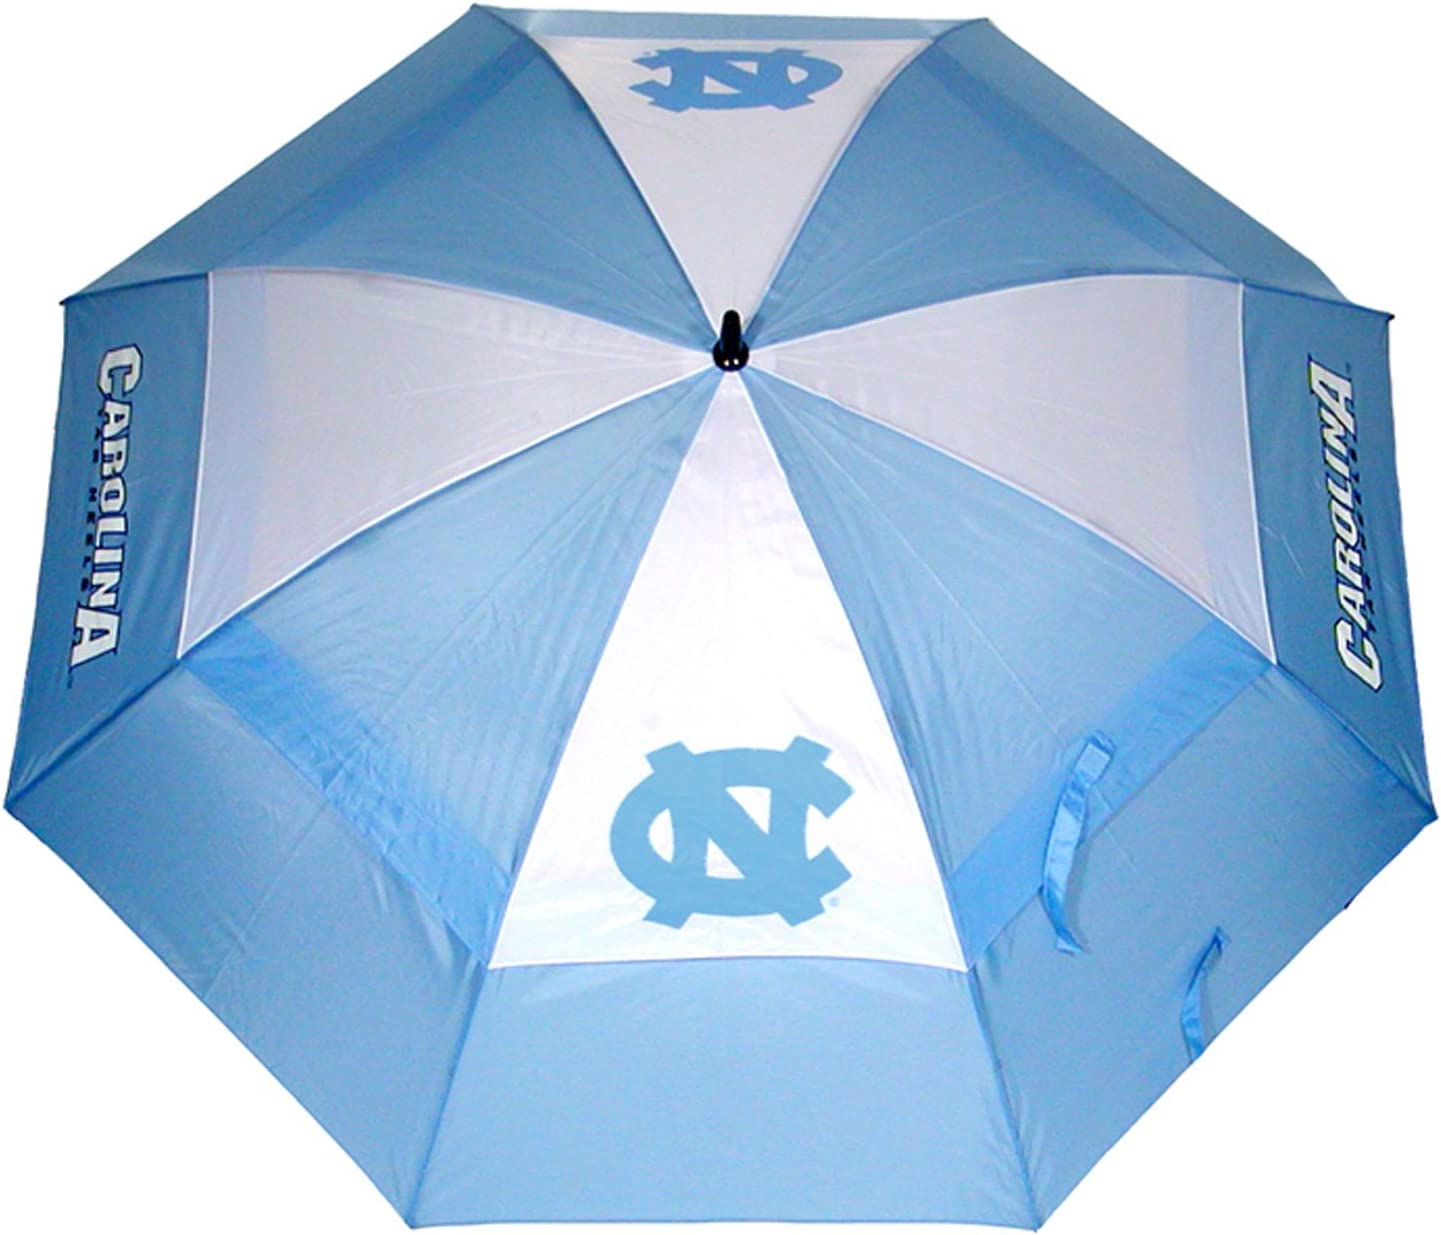 "Team Golf NCAA North Carolina Tar Heels 62"" Golf Umbrella with Protective Sheath, Double Canopy Wind Protection Design, Auto Open Button : Sports & Outdoors"